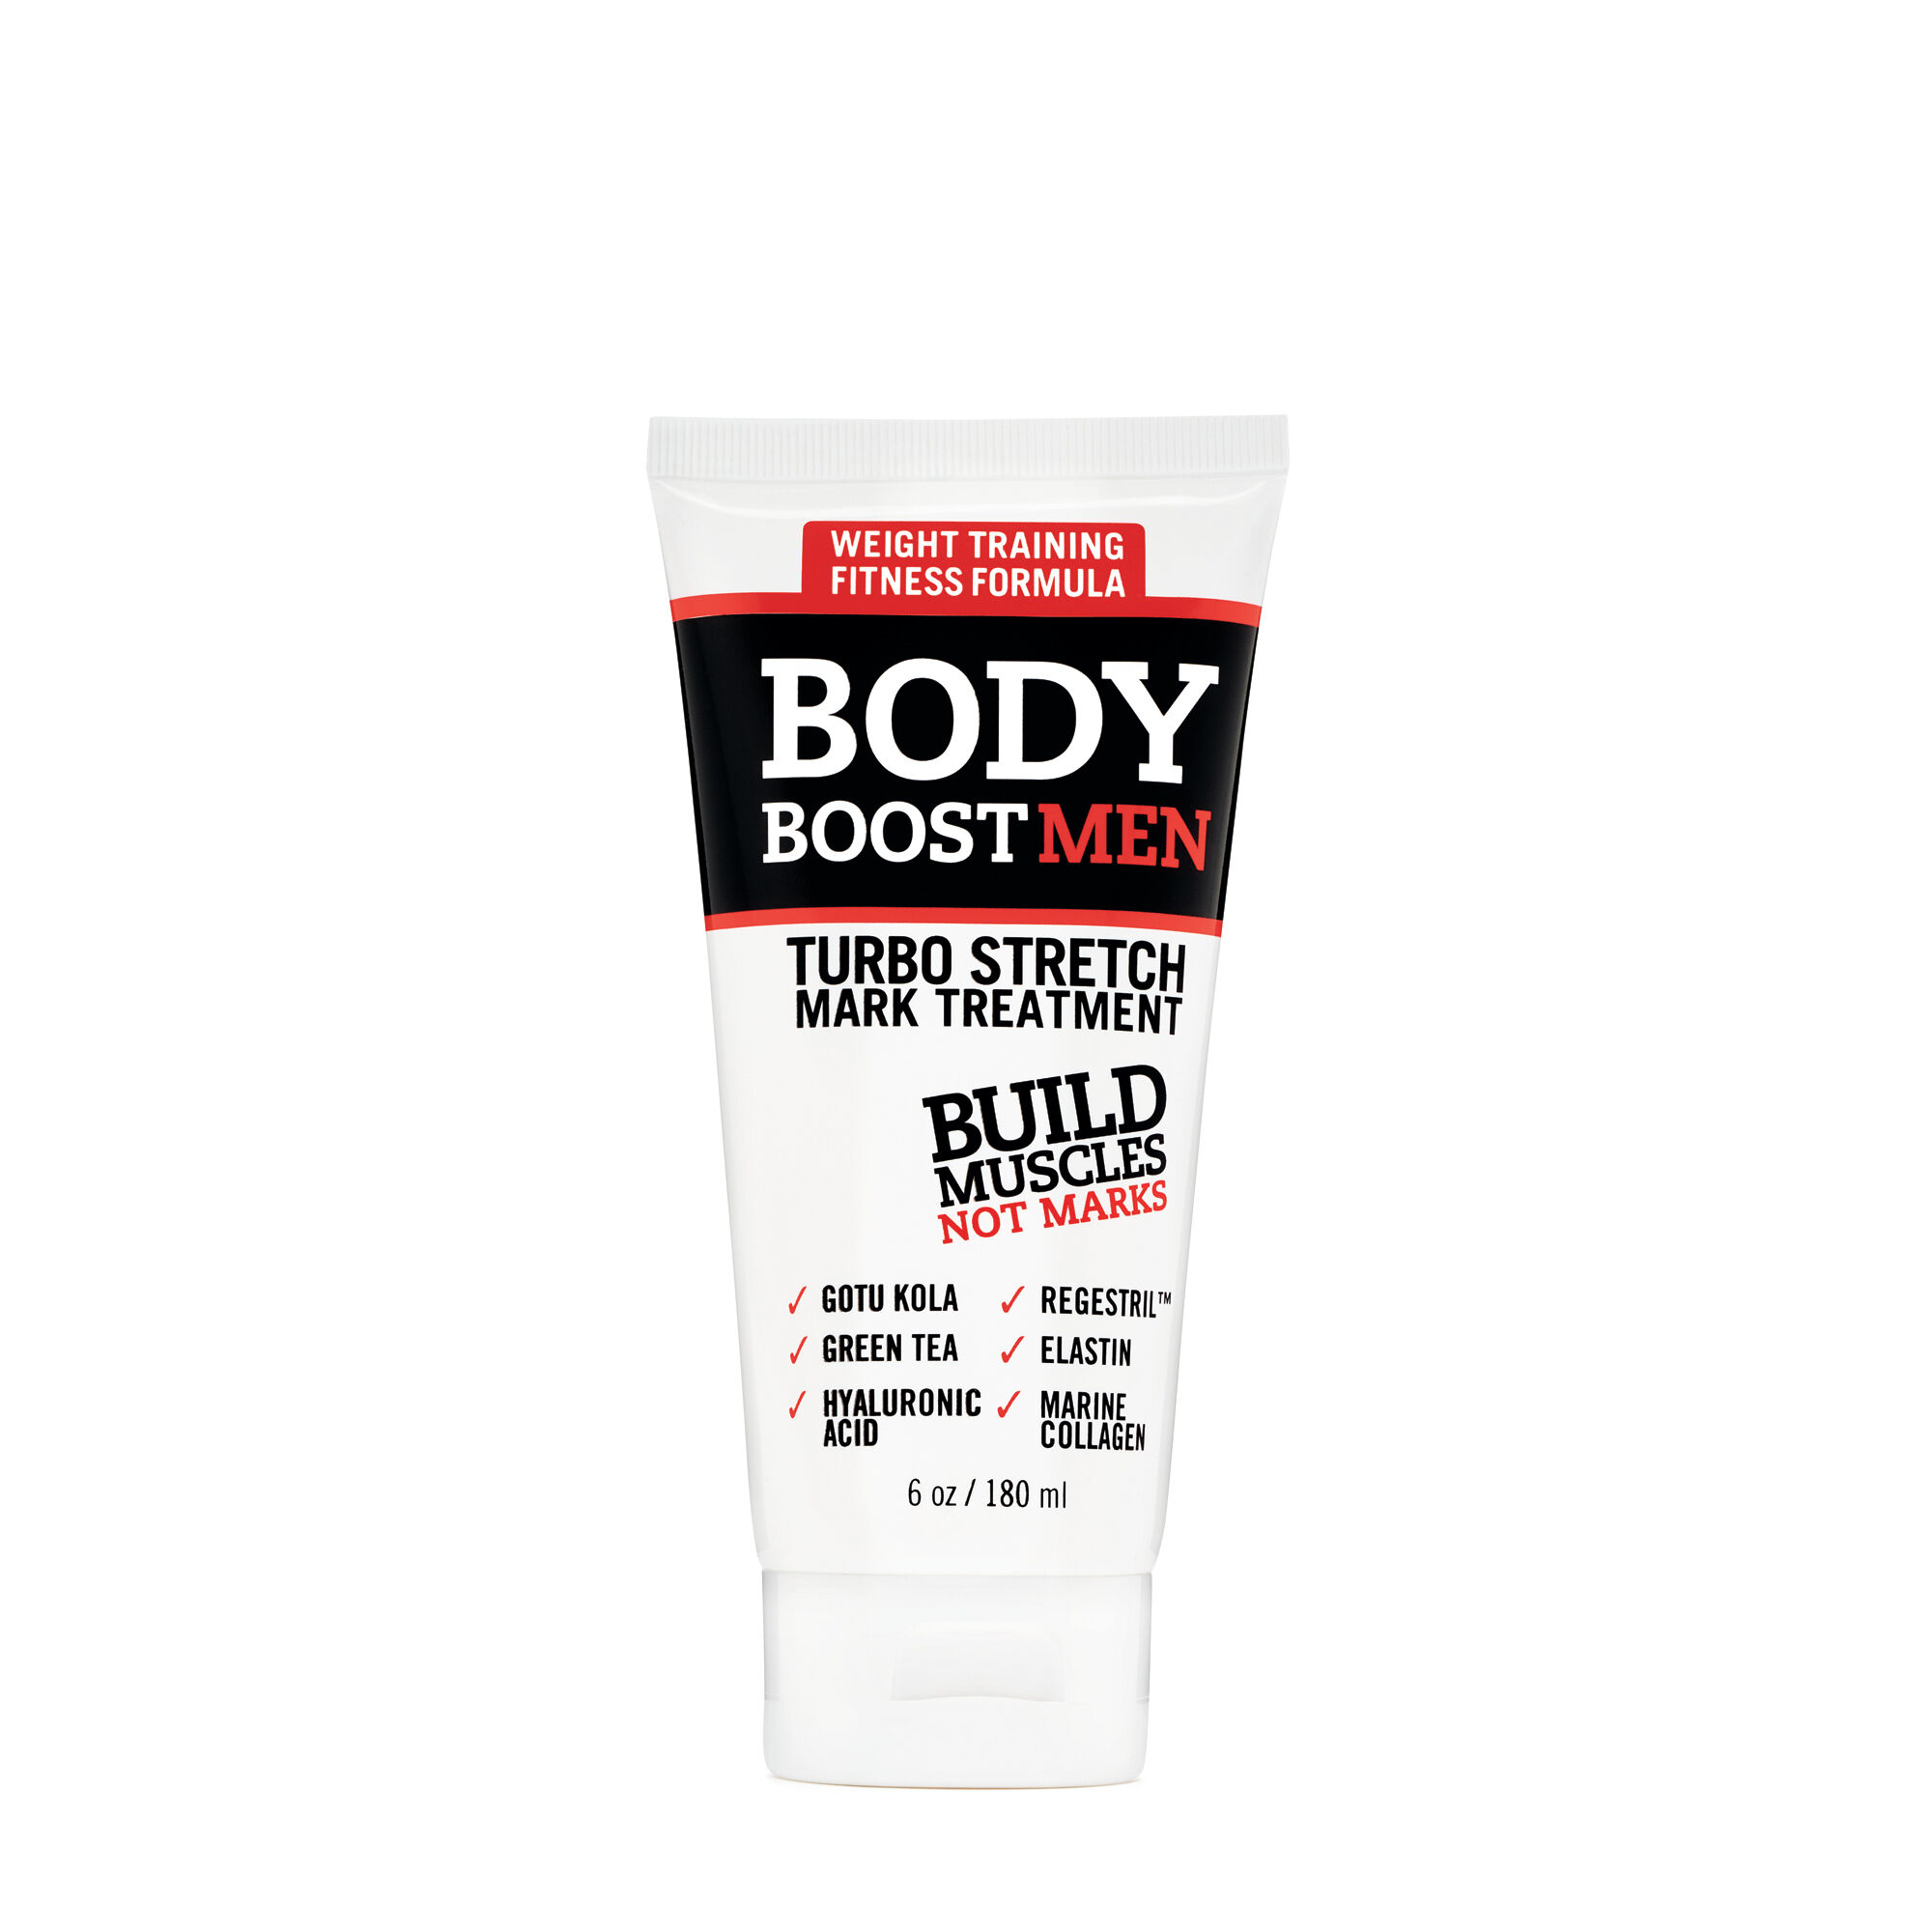 Body Boost Men Turbo Stretch Mark Treatment Gnc